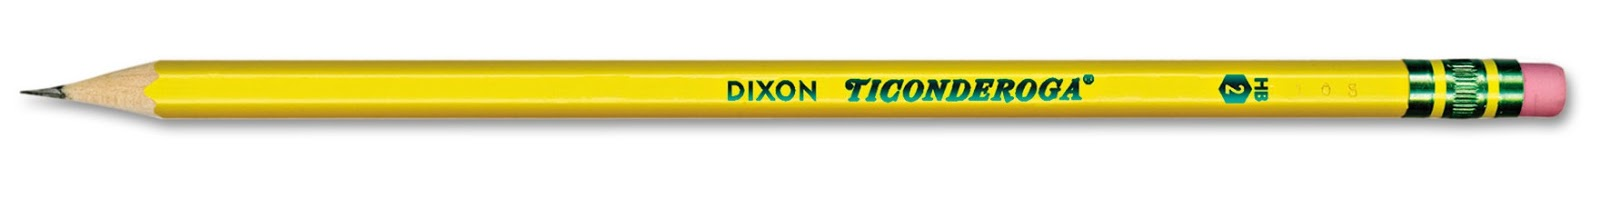 I introduce to you the quantum Dixon Ticonderoga #2 pencil!